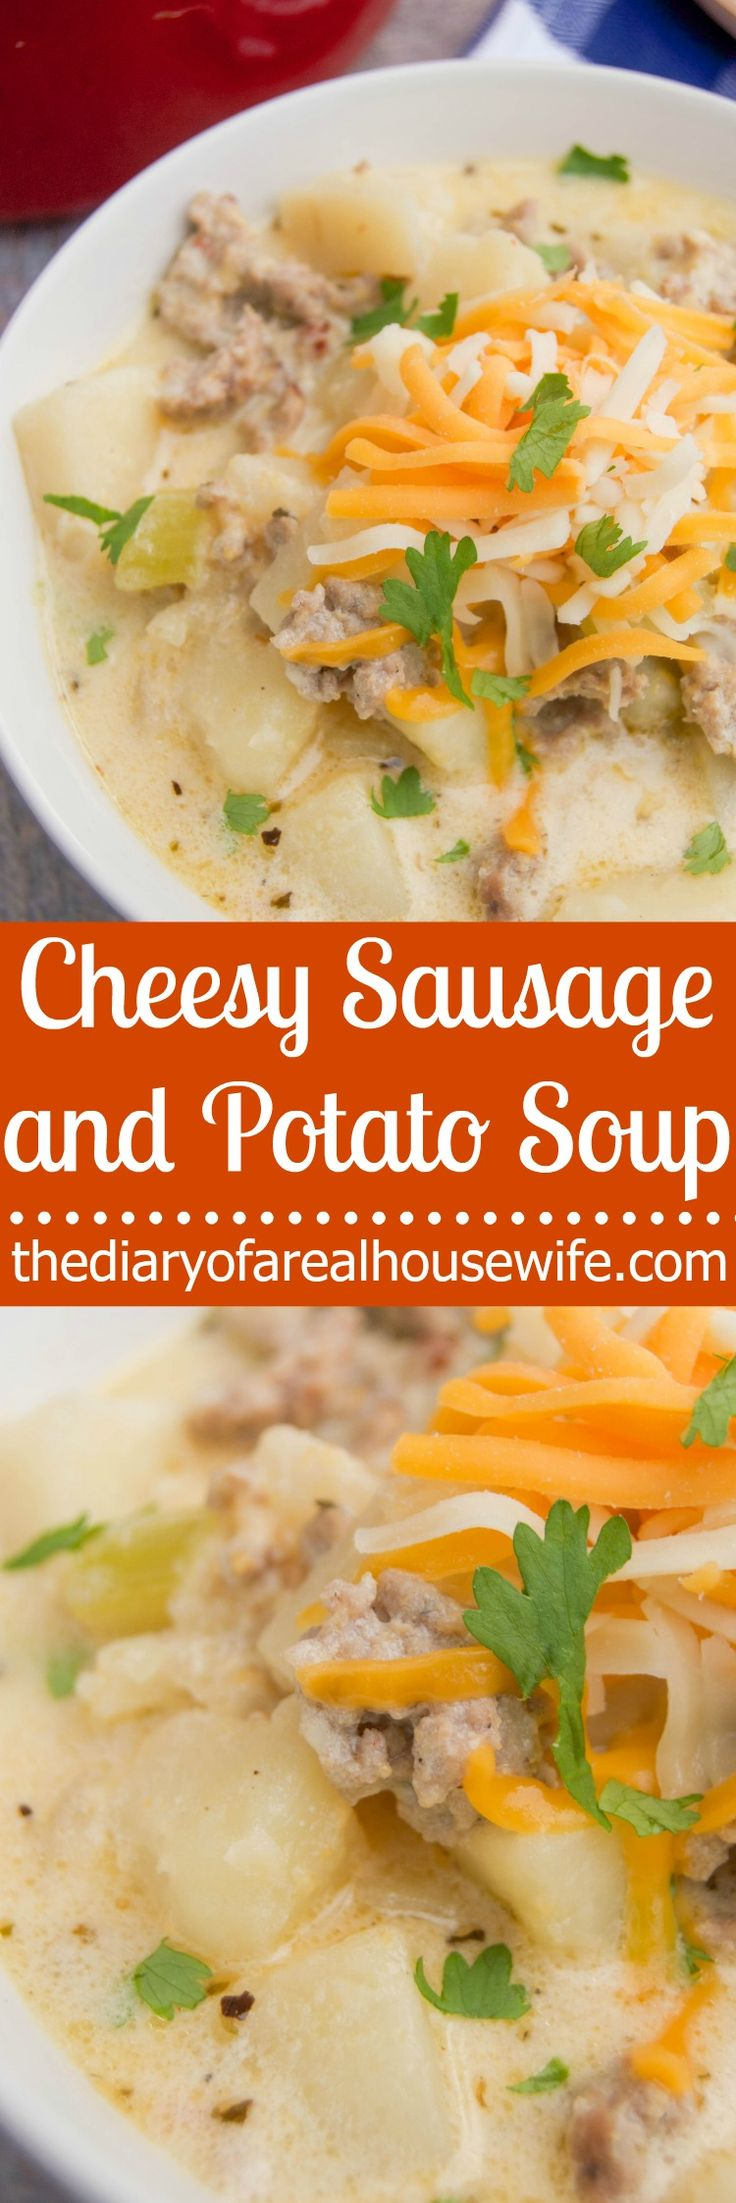 Cheesy Sausage and Potato Soup. I LOVE this soup recipe. the perfect recipe to warm you up this winter.